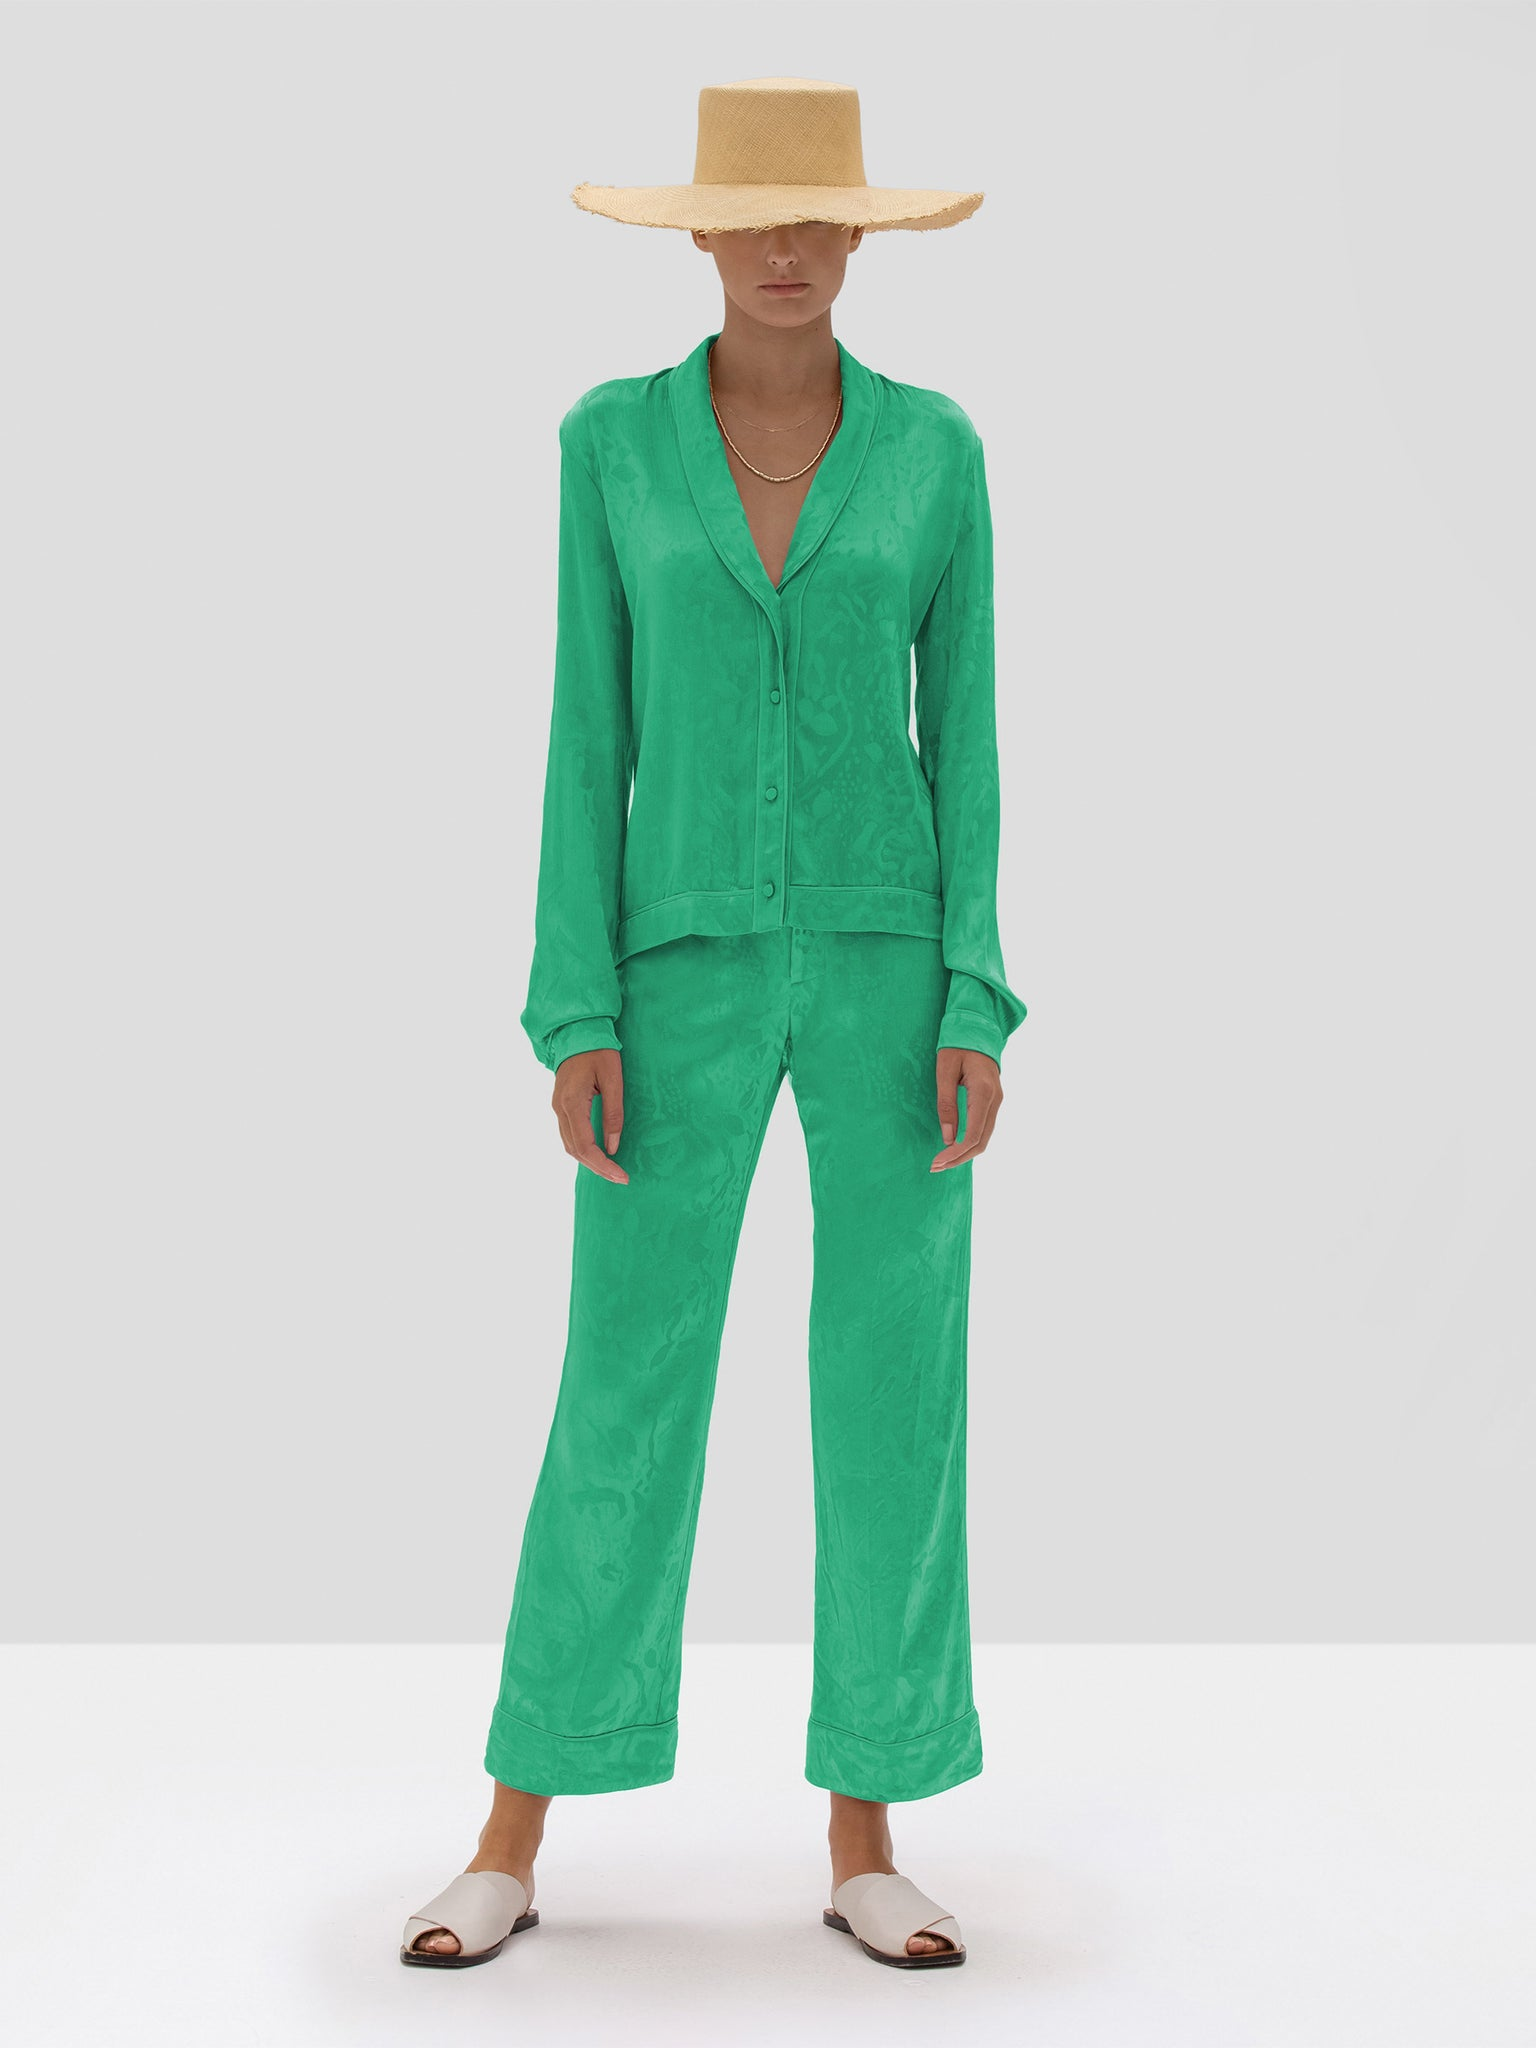 Alexis Eura Top in Emerald Green from Spring Summer 2020